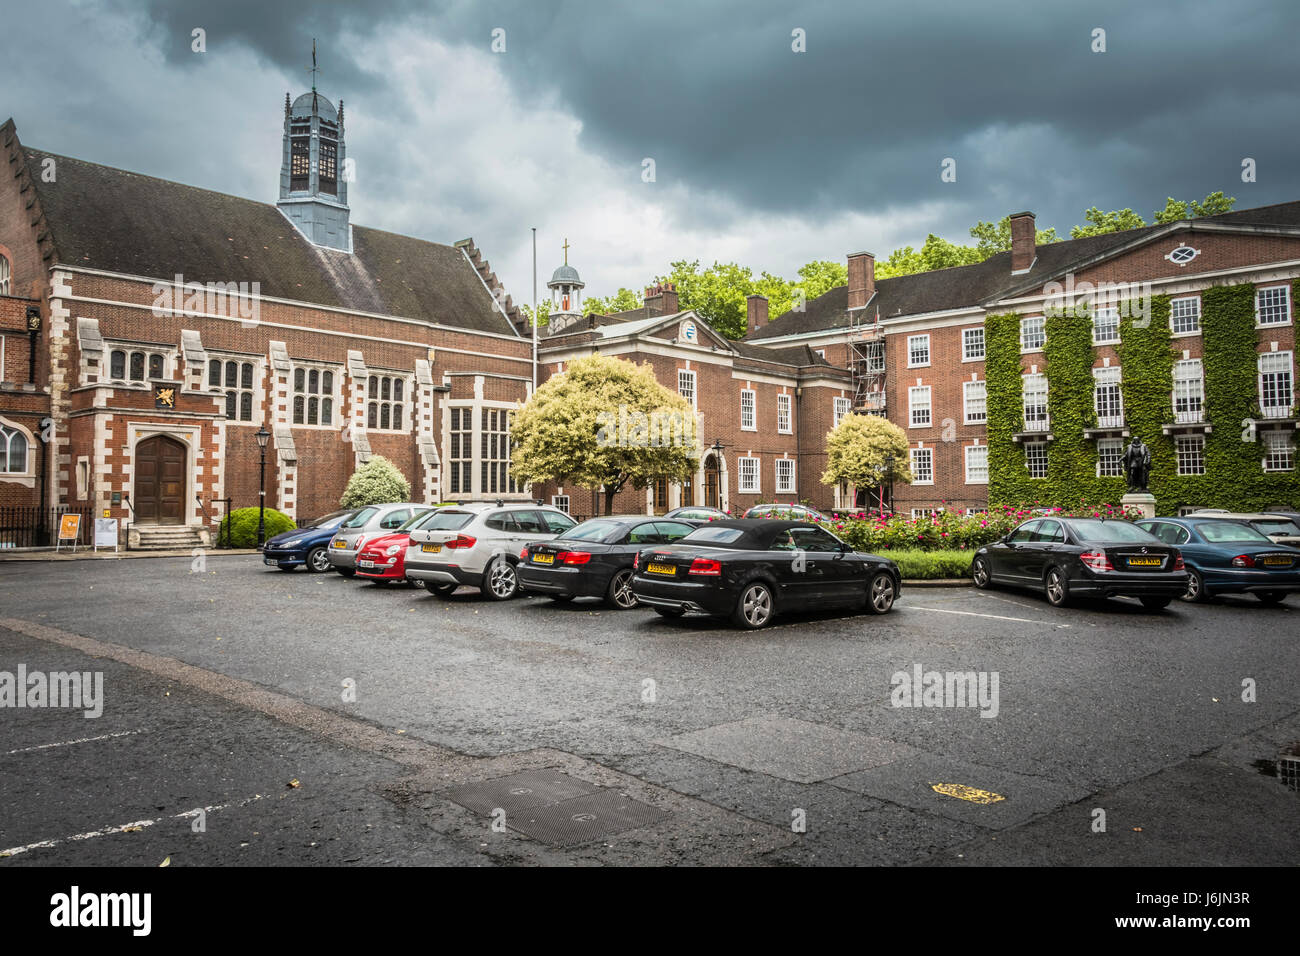 Gray's Inn Hall and South Square Gardens, London, UK - Stock Image